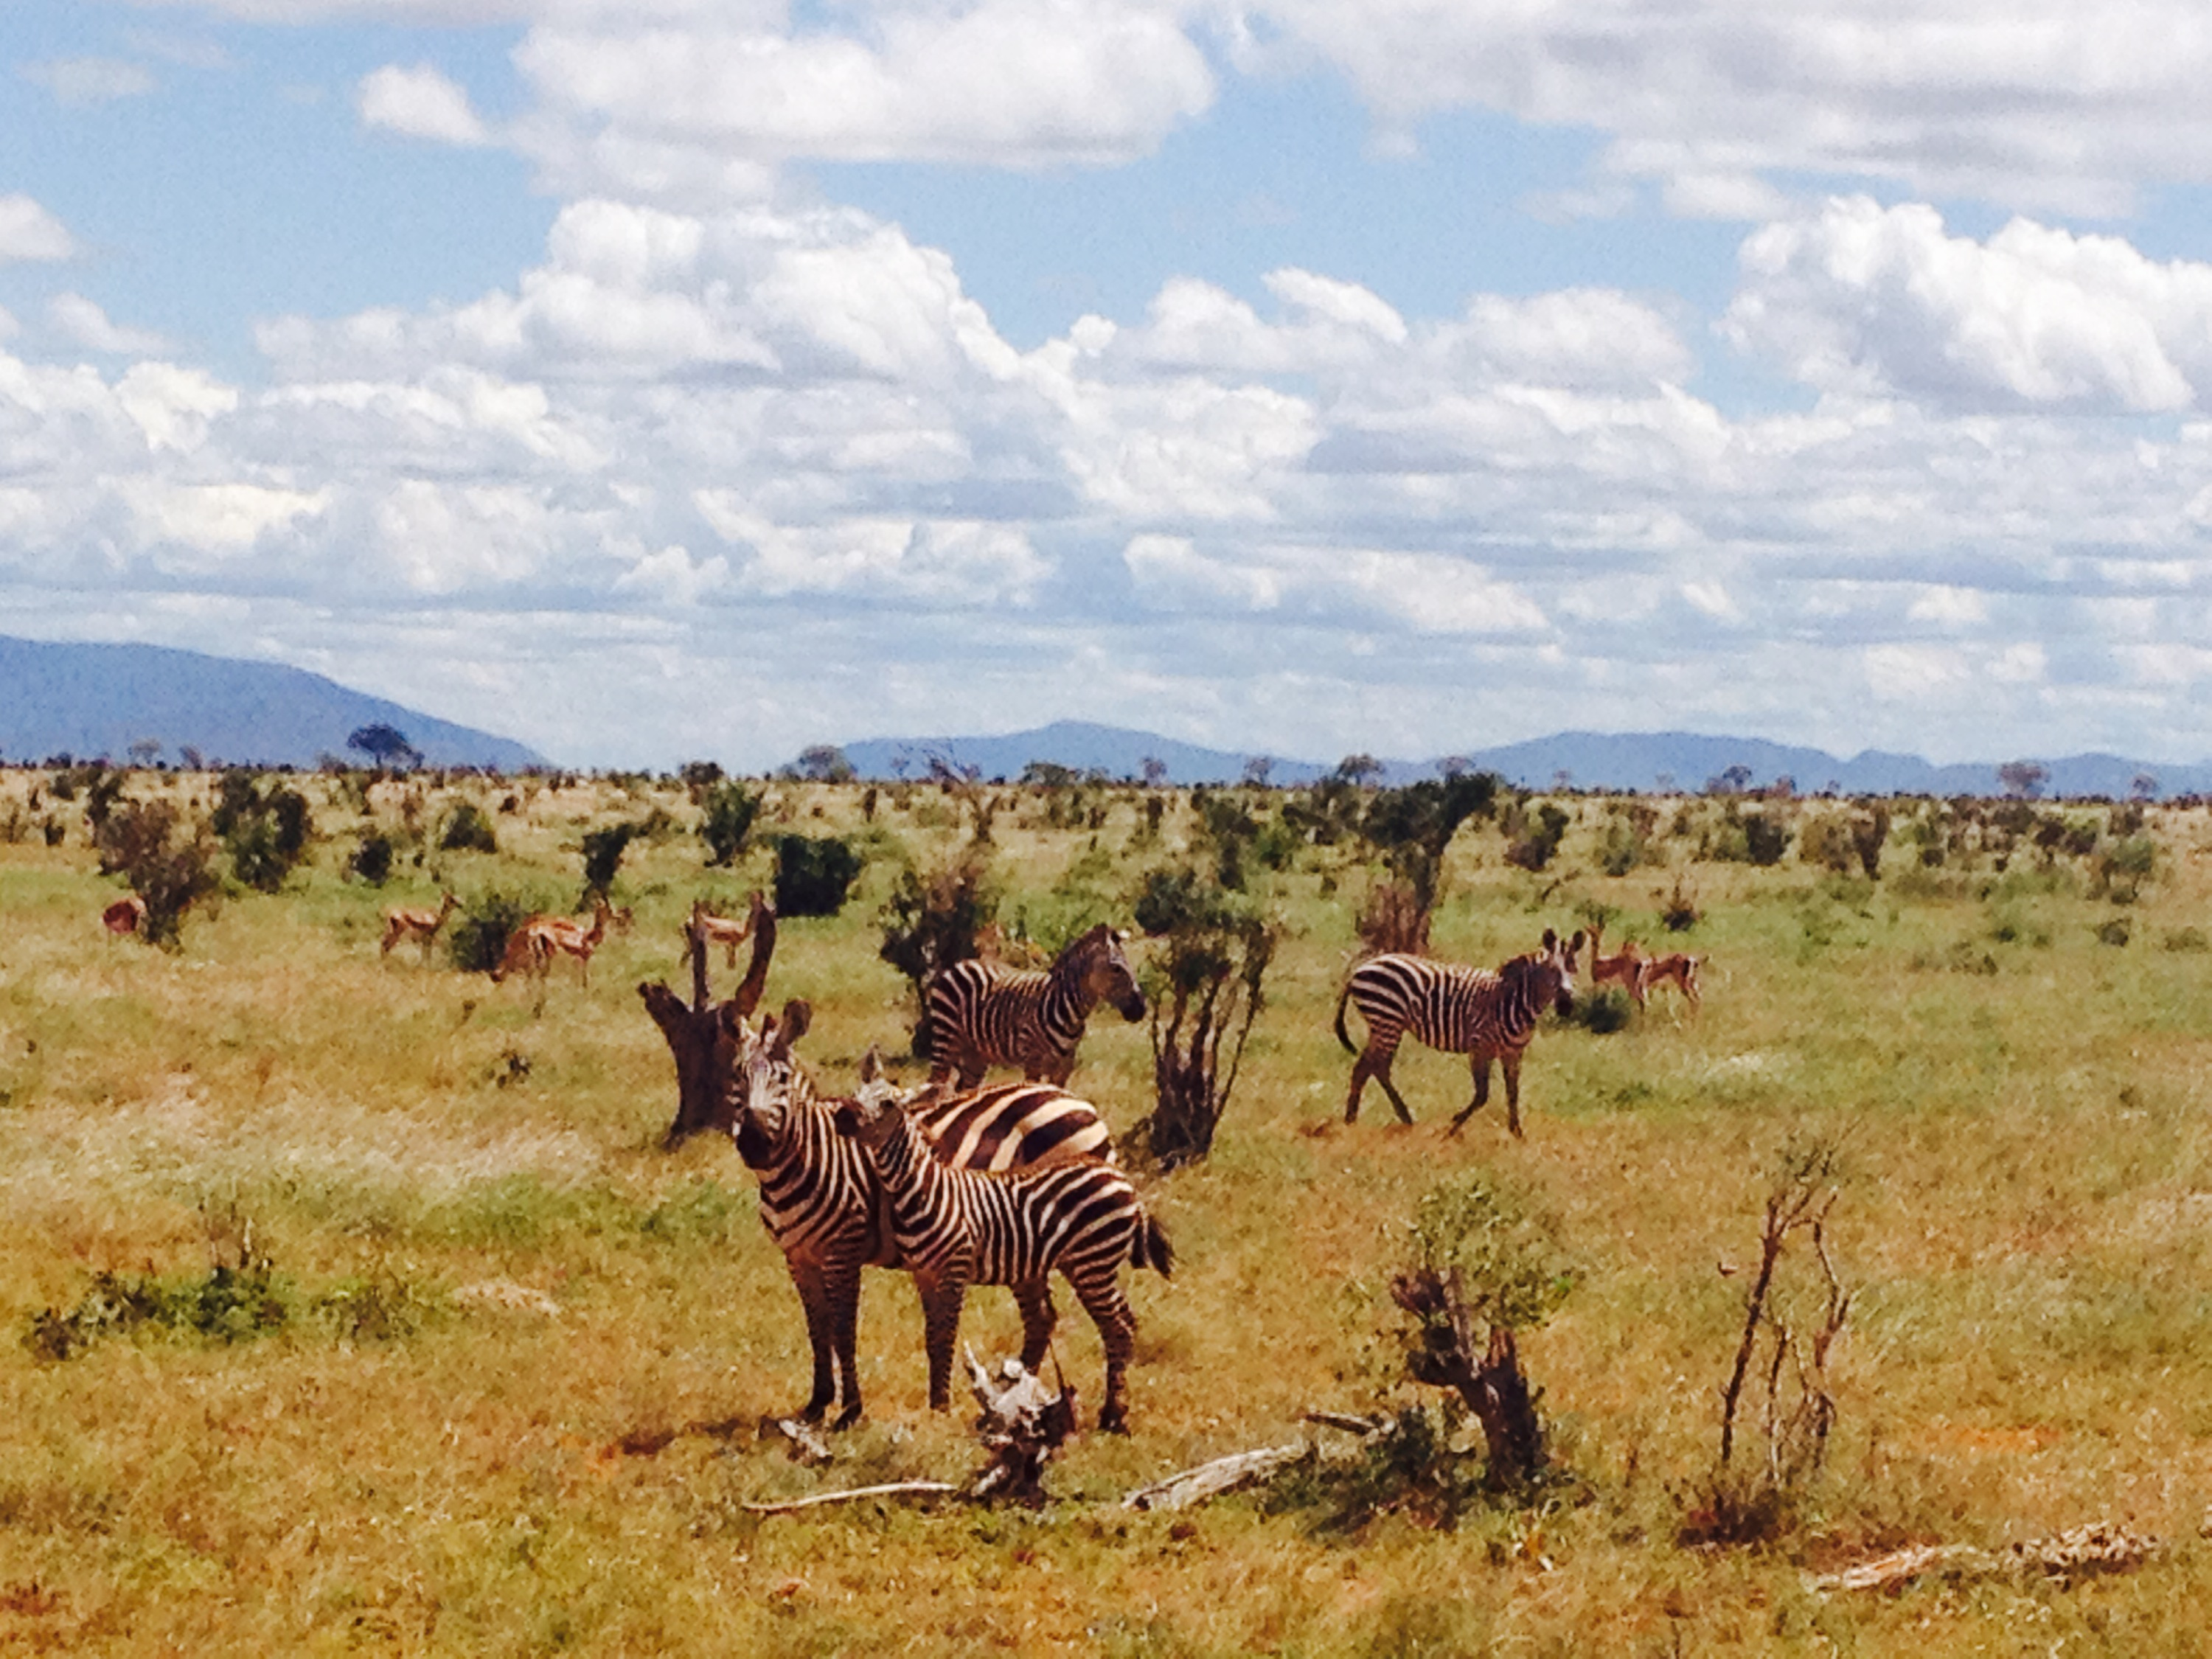 Zebre in Kenya.